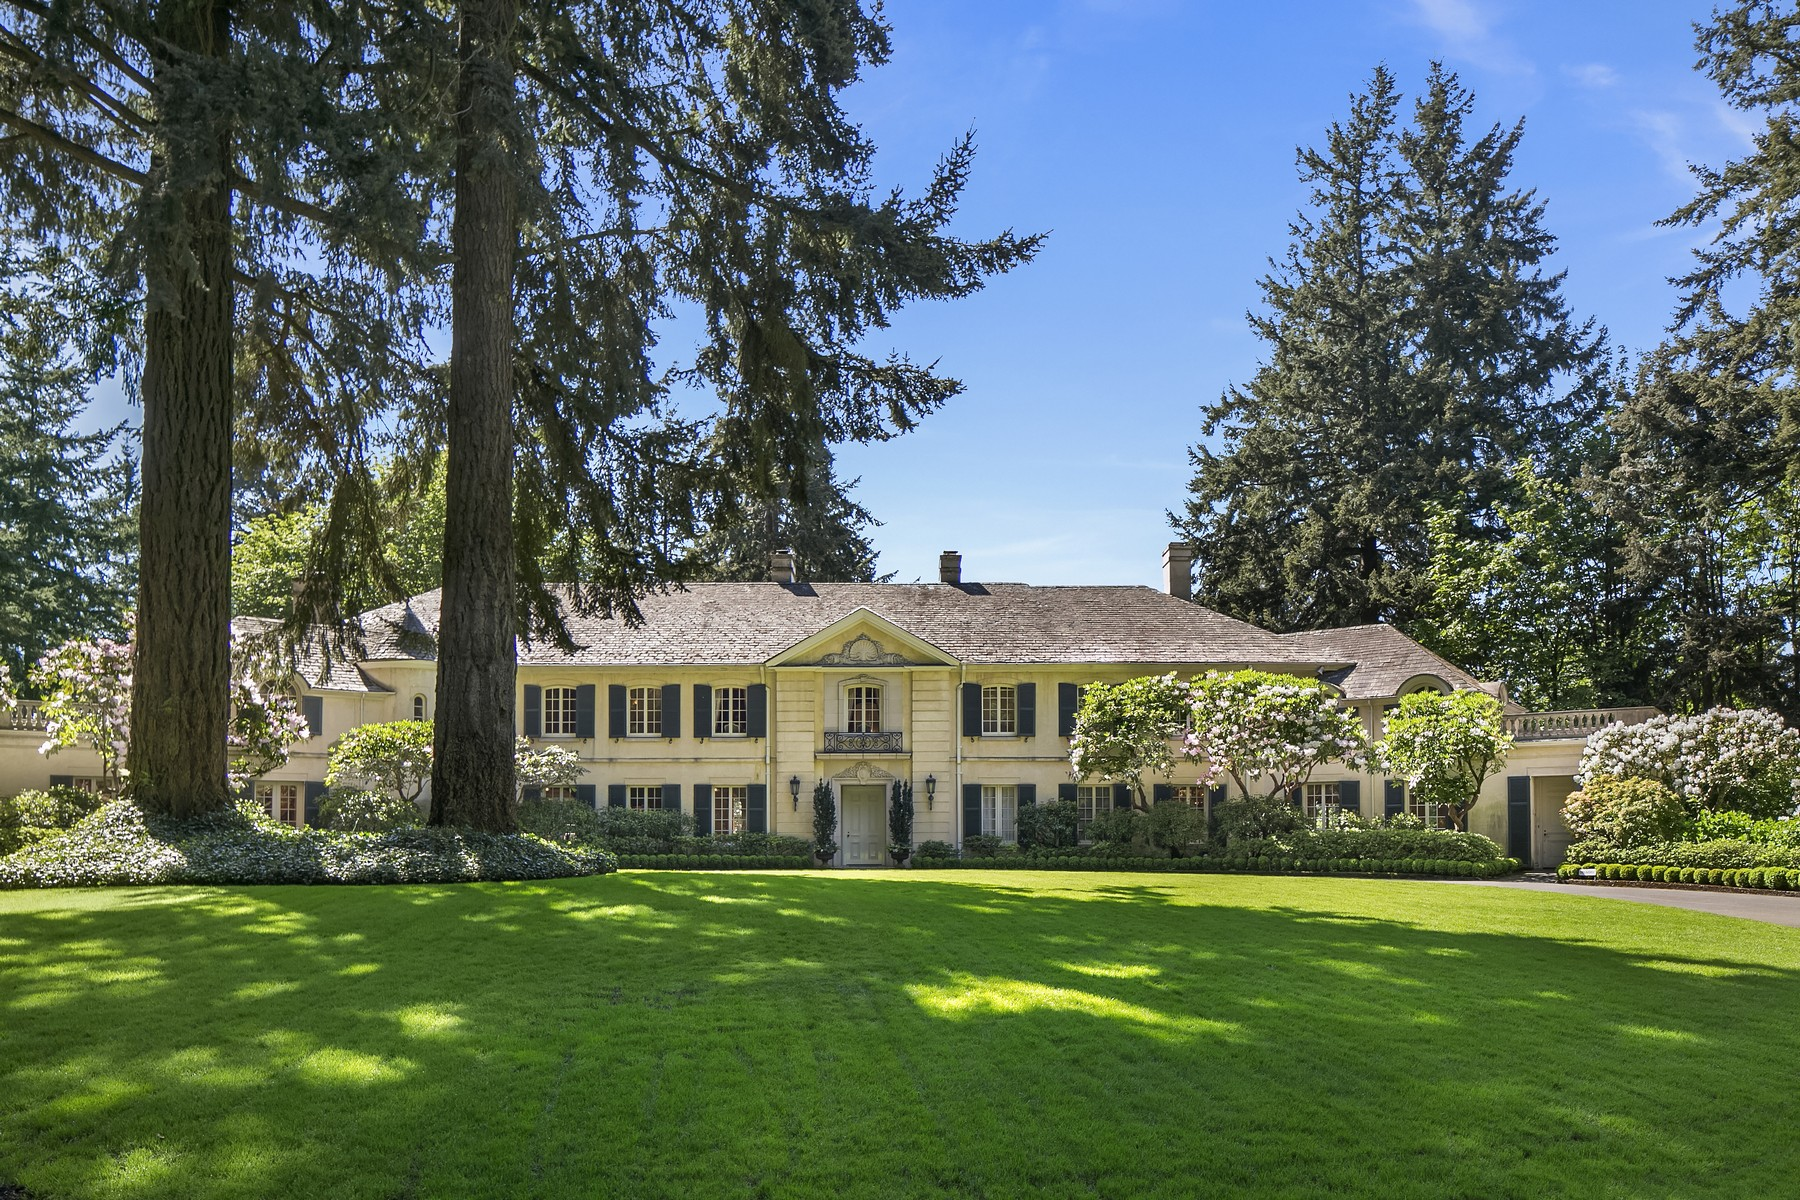 Maison unifamiliale pour l Vente à Chapel Lane - A House with a Pedigree 166 Boundary Lane NW The Highlands, Seattle, Washington, 98177 États-Unis